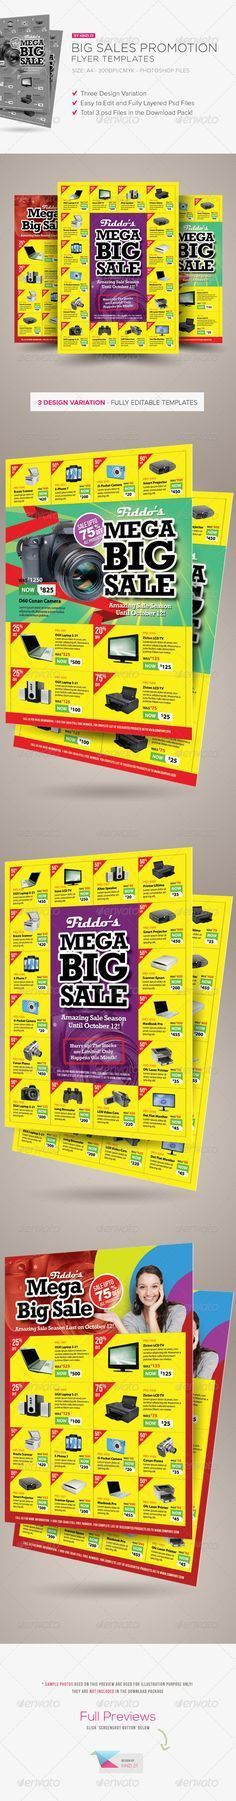 Product Promotion Flyer Print Templates   Flyer printing, Print ...